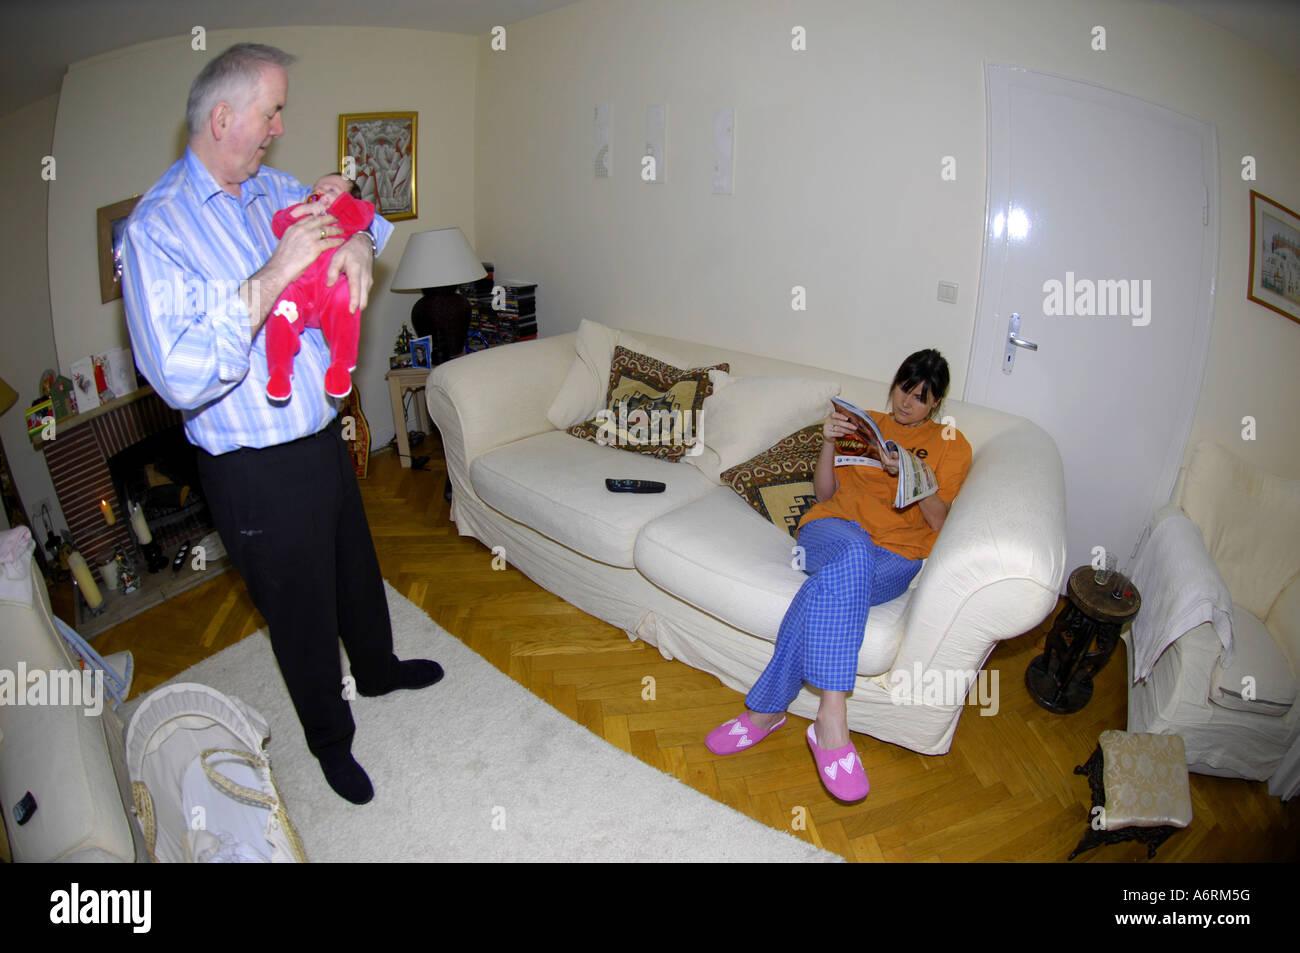 stock photo single mother baby home inside motherhood parent sit setee sofa couch care caring grandad gradfather rooom lounge